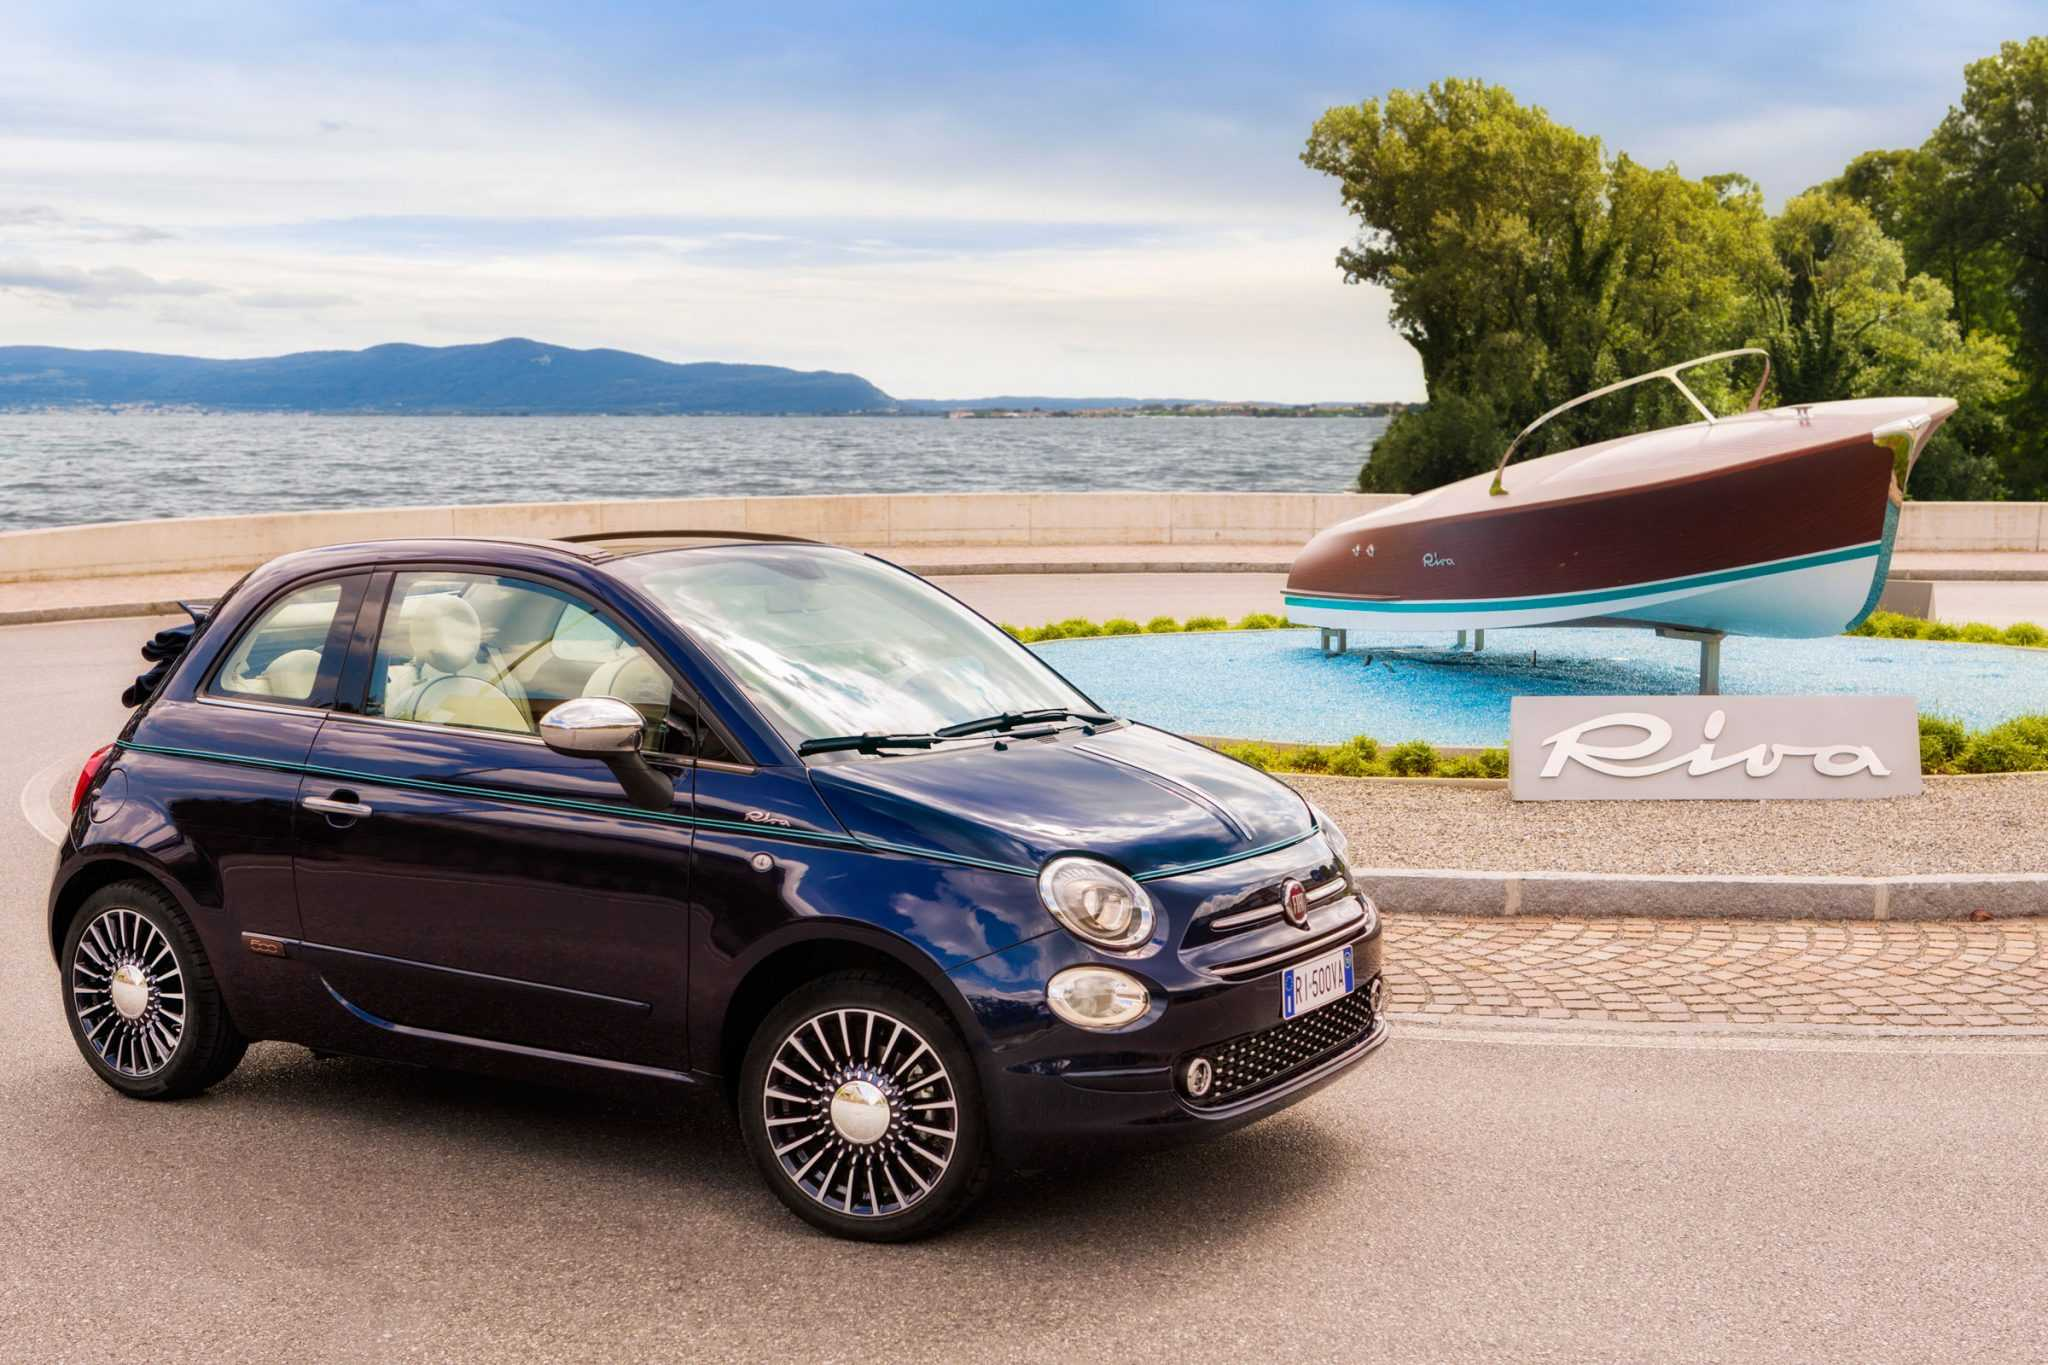 Fiat 500 Riva Edition Boasts Of Exquisite Interiors Inspired By a Yacht